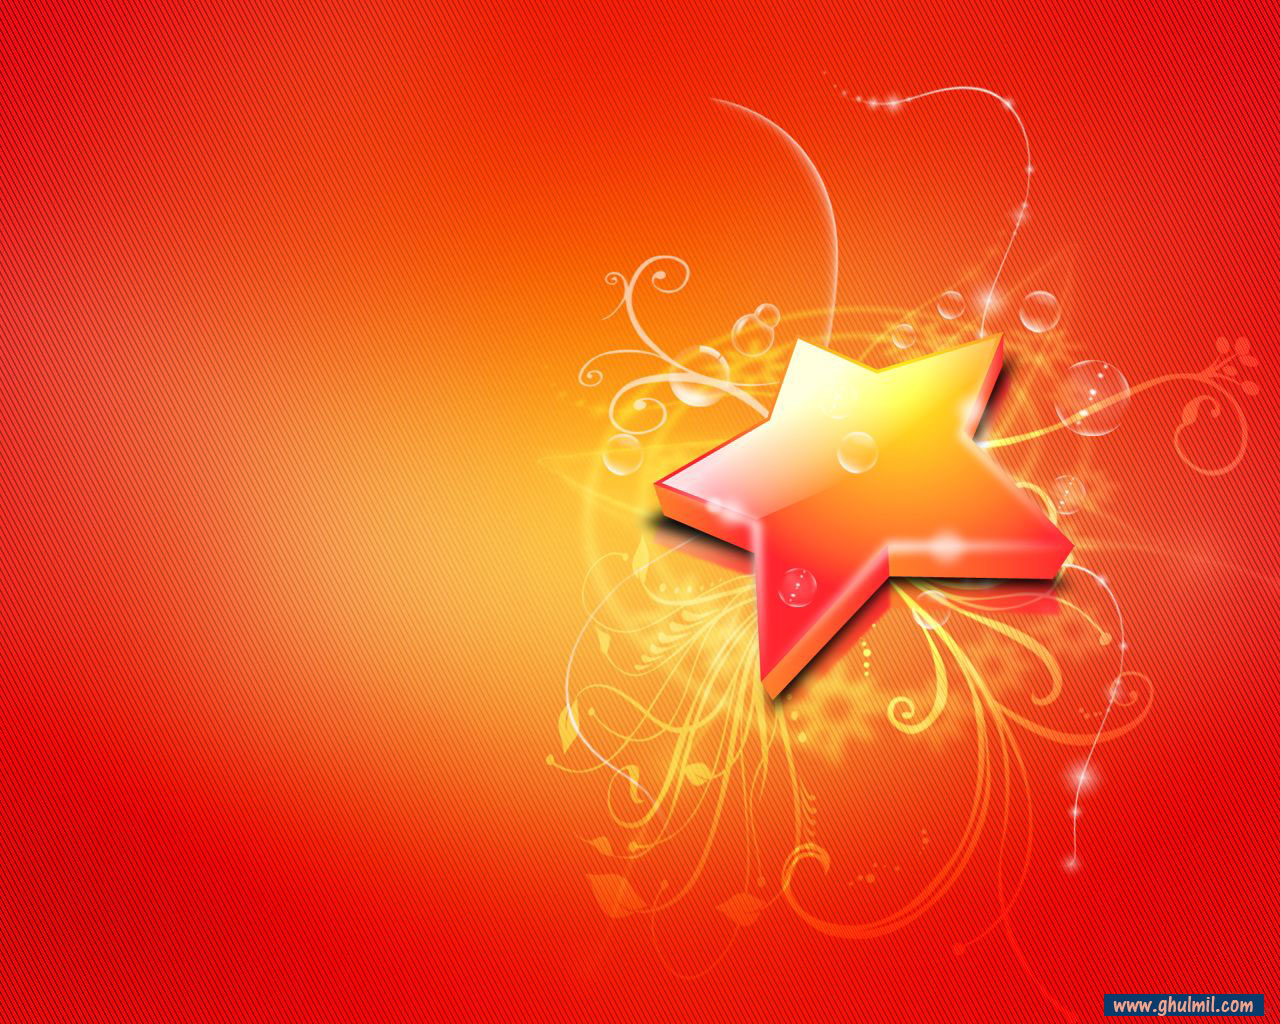 3d very beautiful hd quality star wallpaper for laptops background E 1280x1024